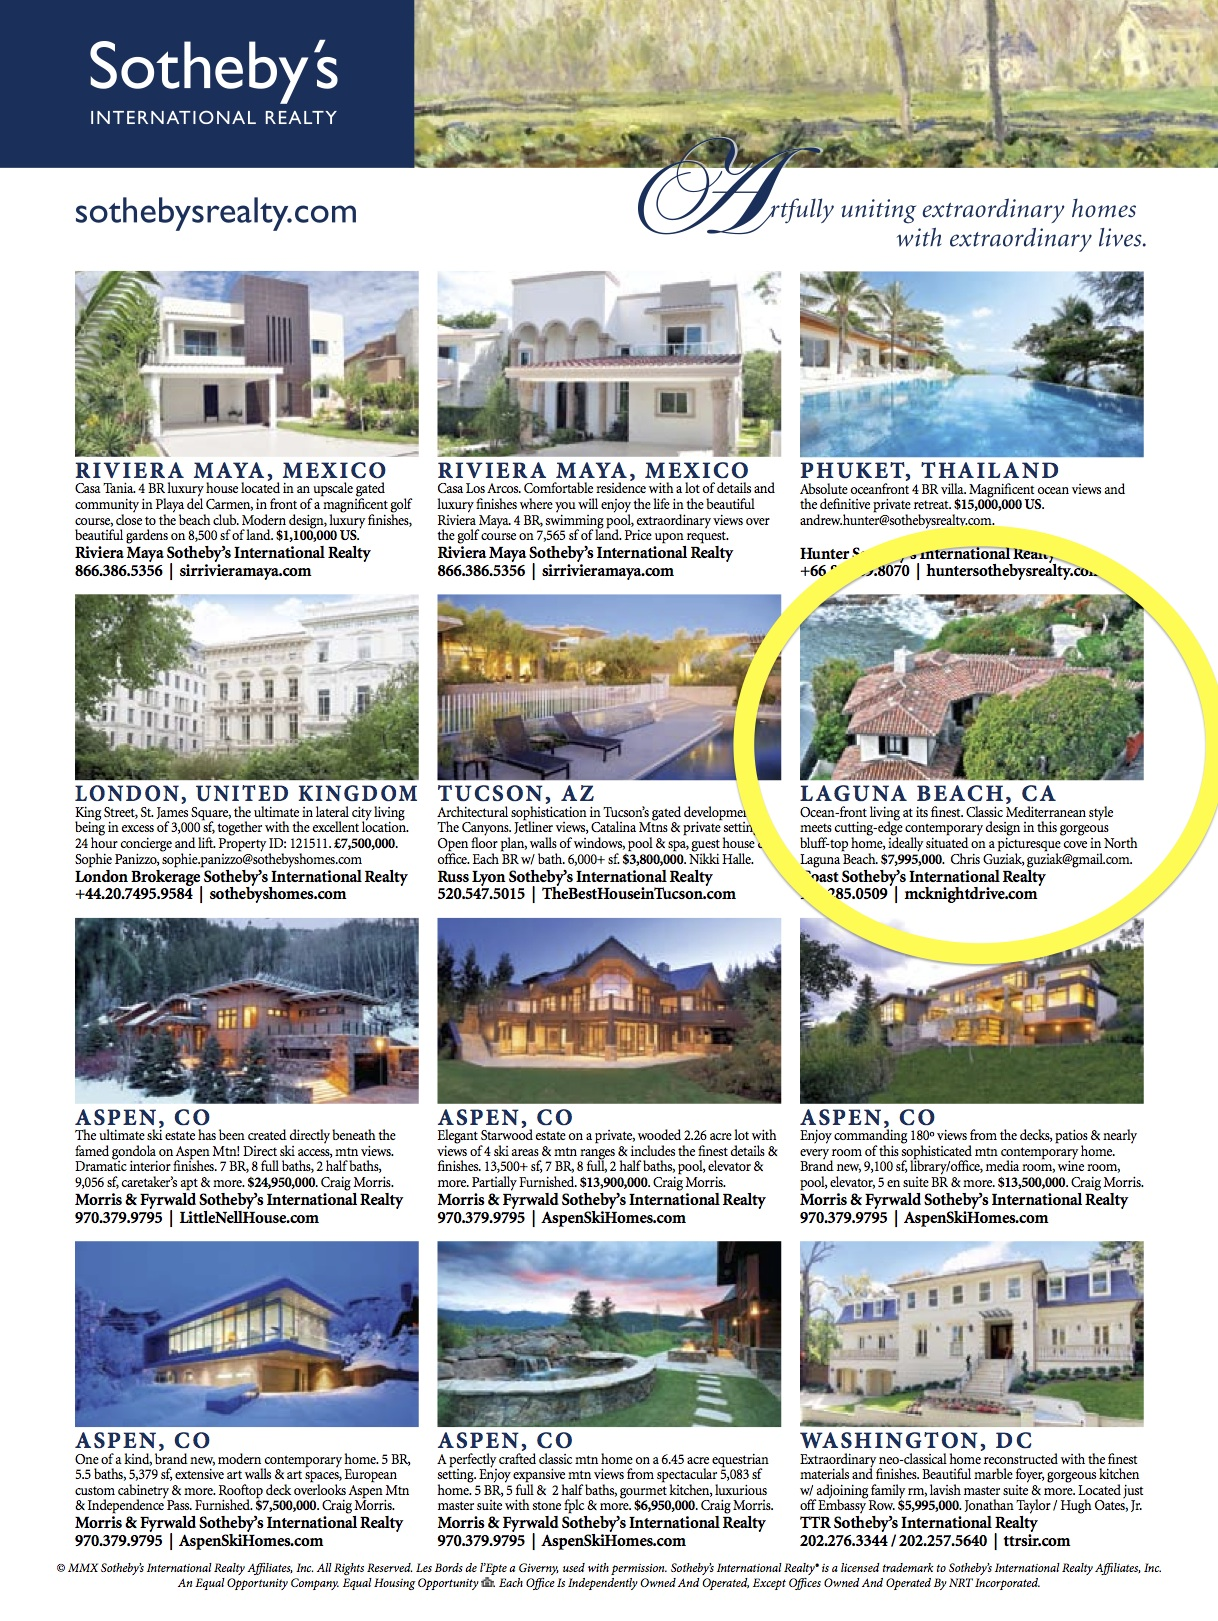 Property featured in Robb Report